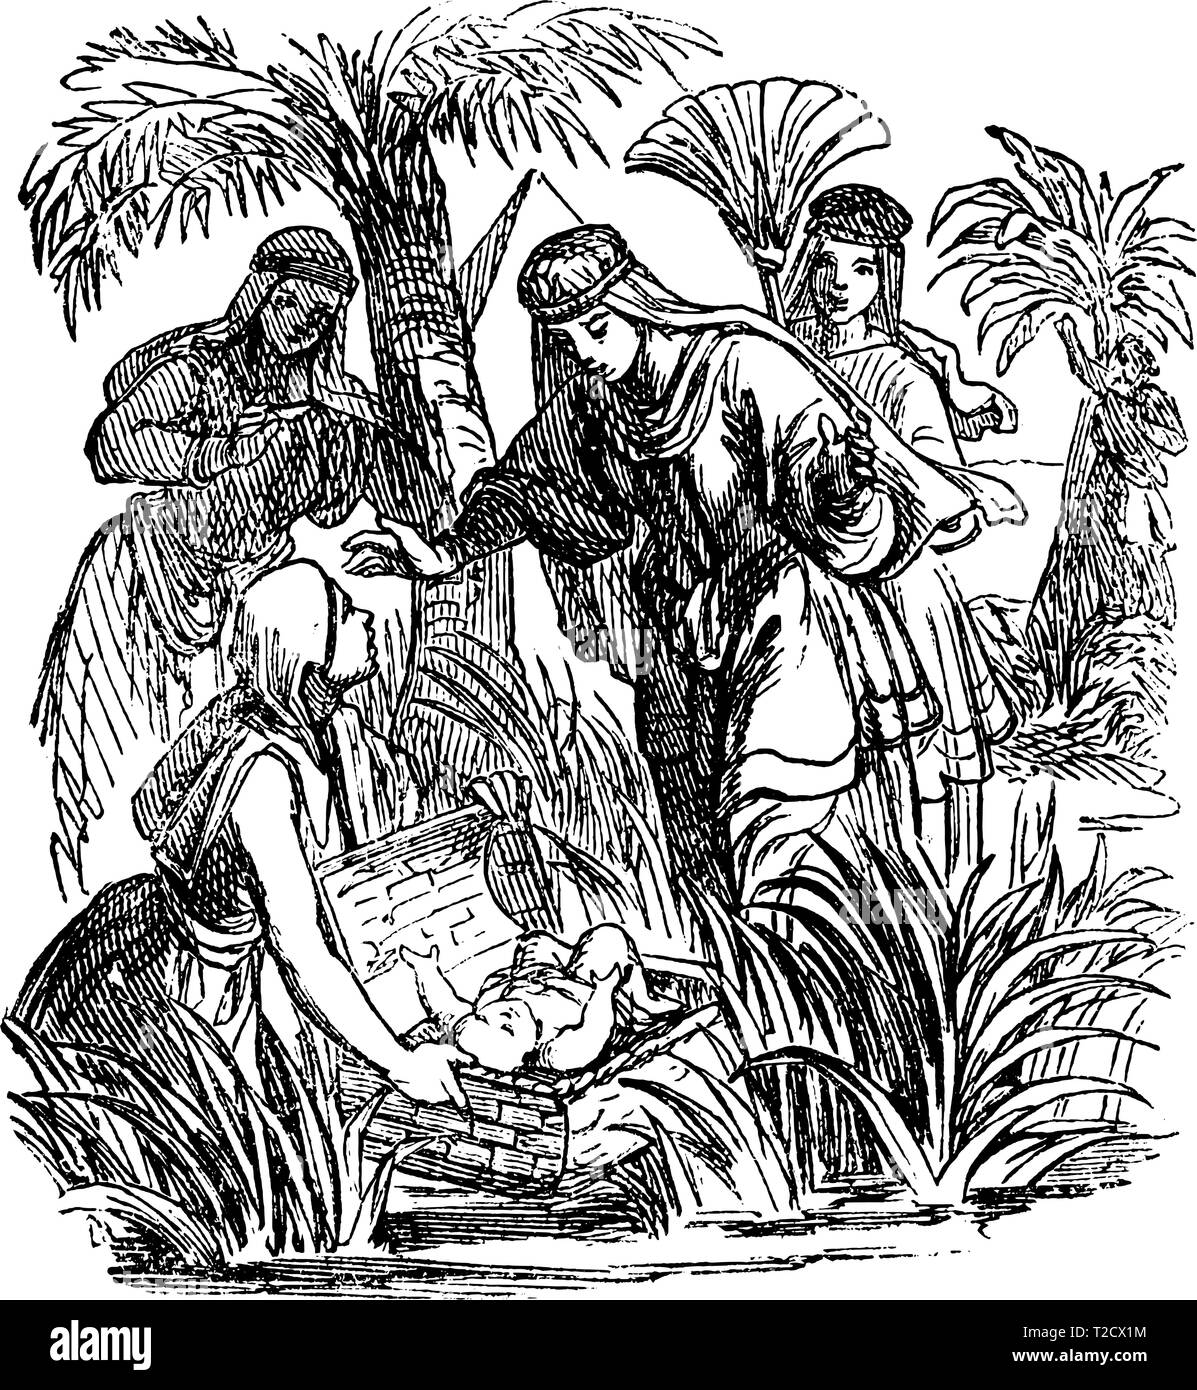 Vintage antique illustration and line drawing or engraving of biblical story about how Moses as baby was found by Egyptian princess. - Stock Vector